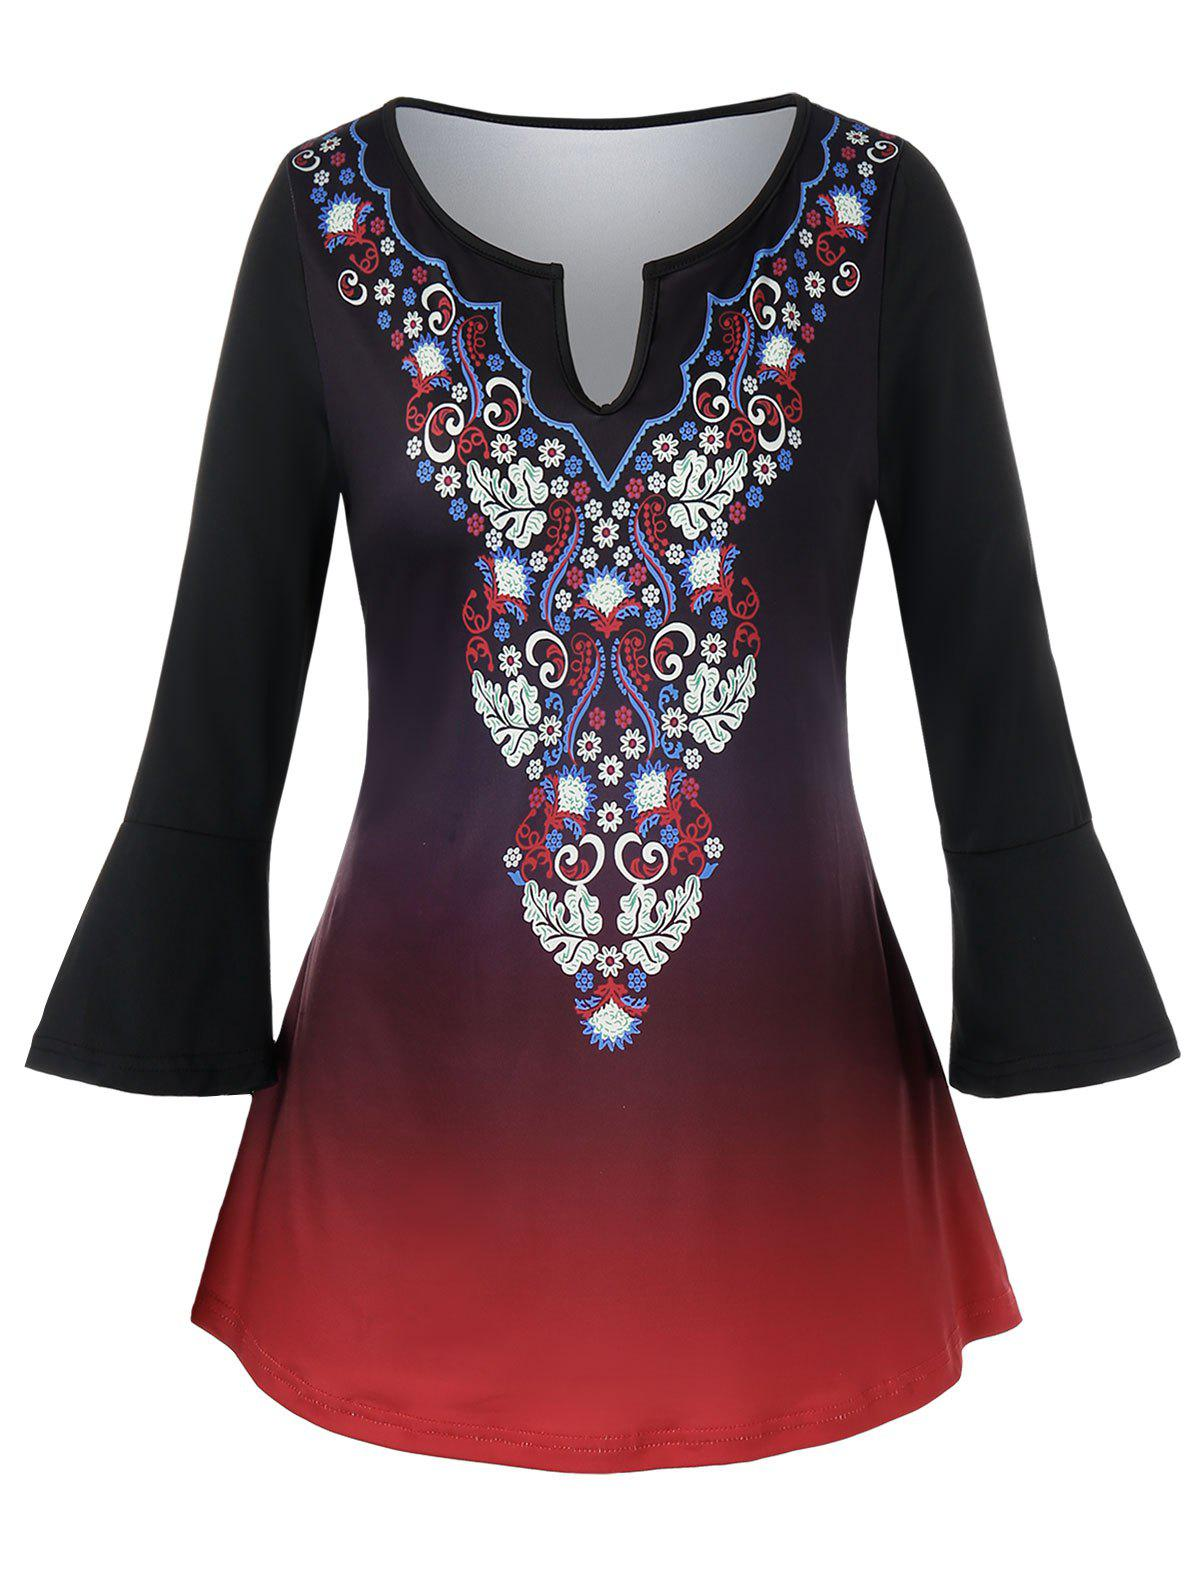 Plus Size Ethnic Floral Printed Ombre Top - BLACK 2X